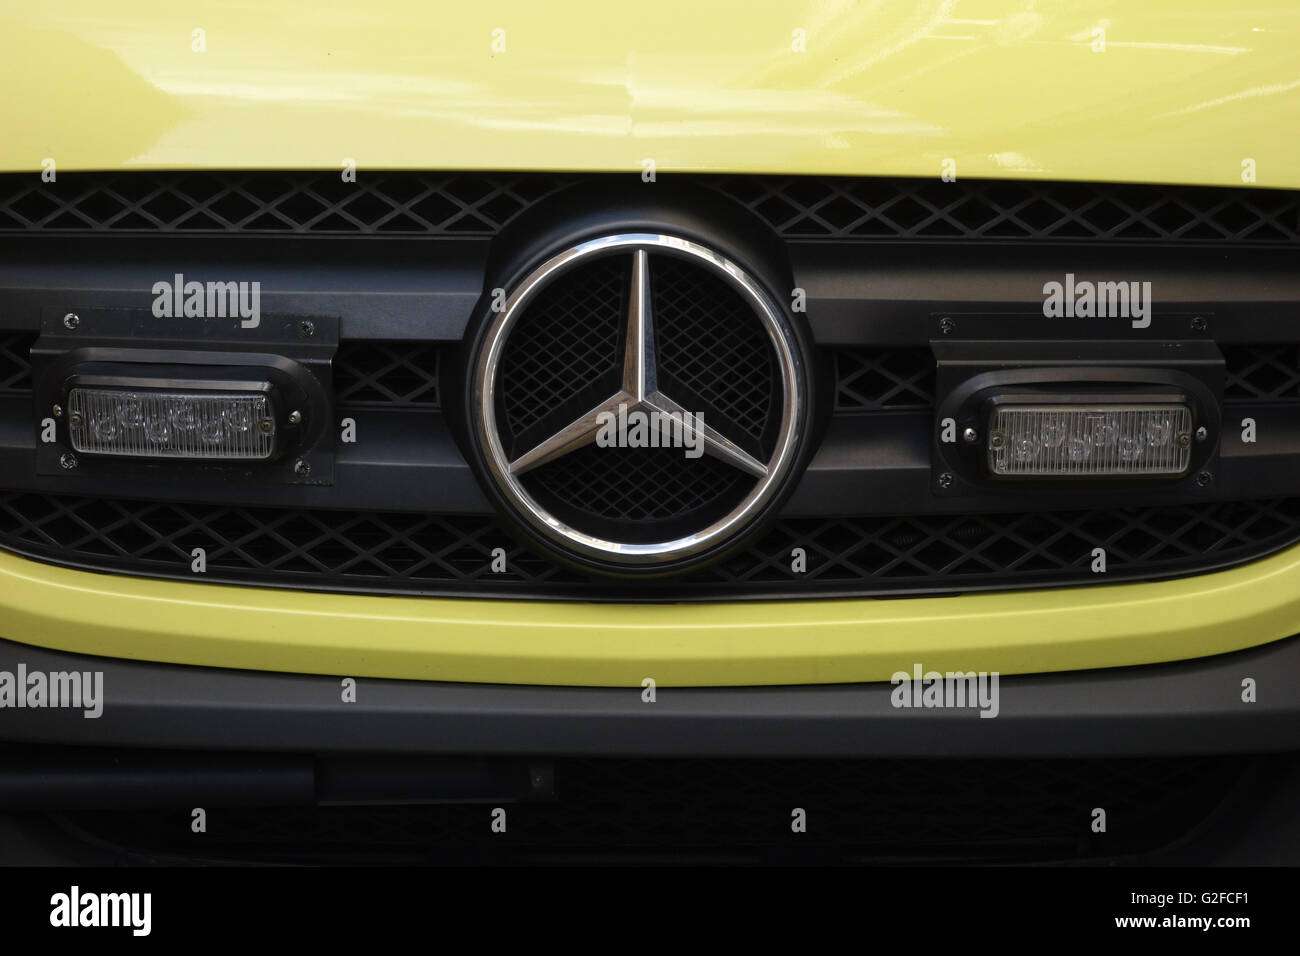 Front grille of a London Ambulance Service Mercedes Sprinter van showing the emergency lights - Stock Image